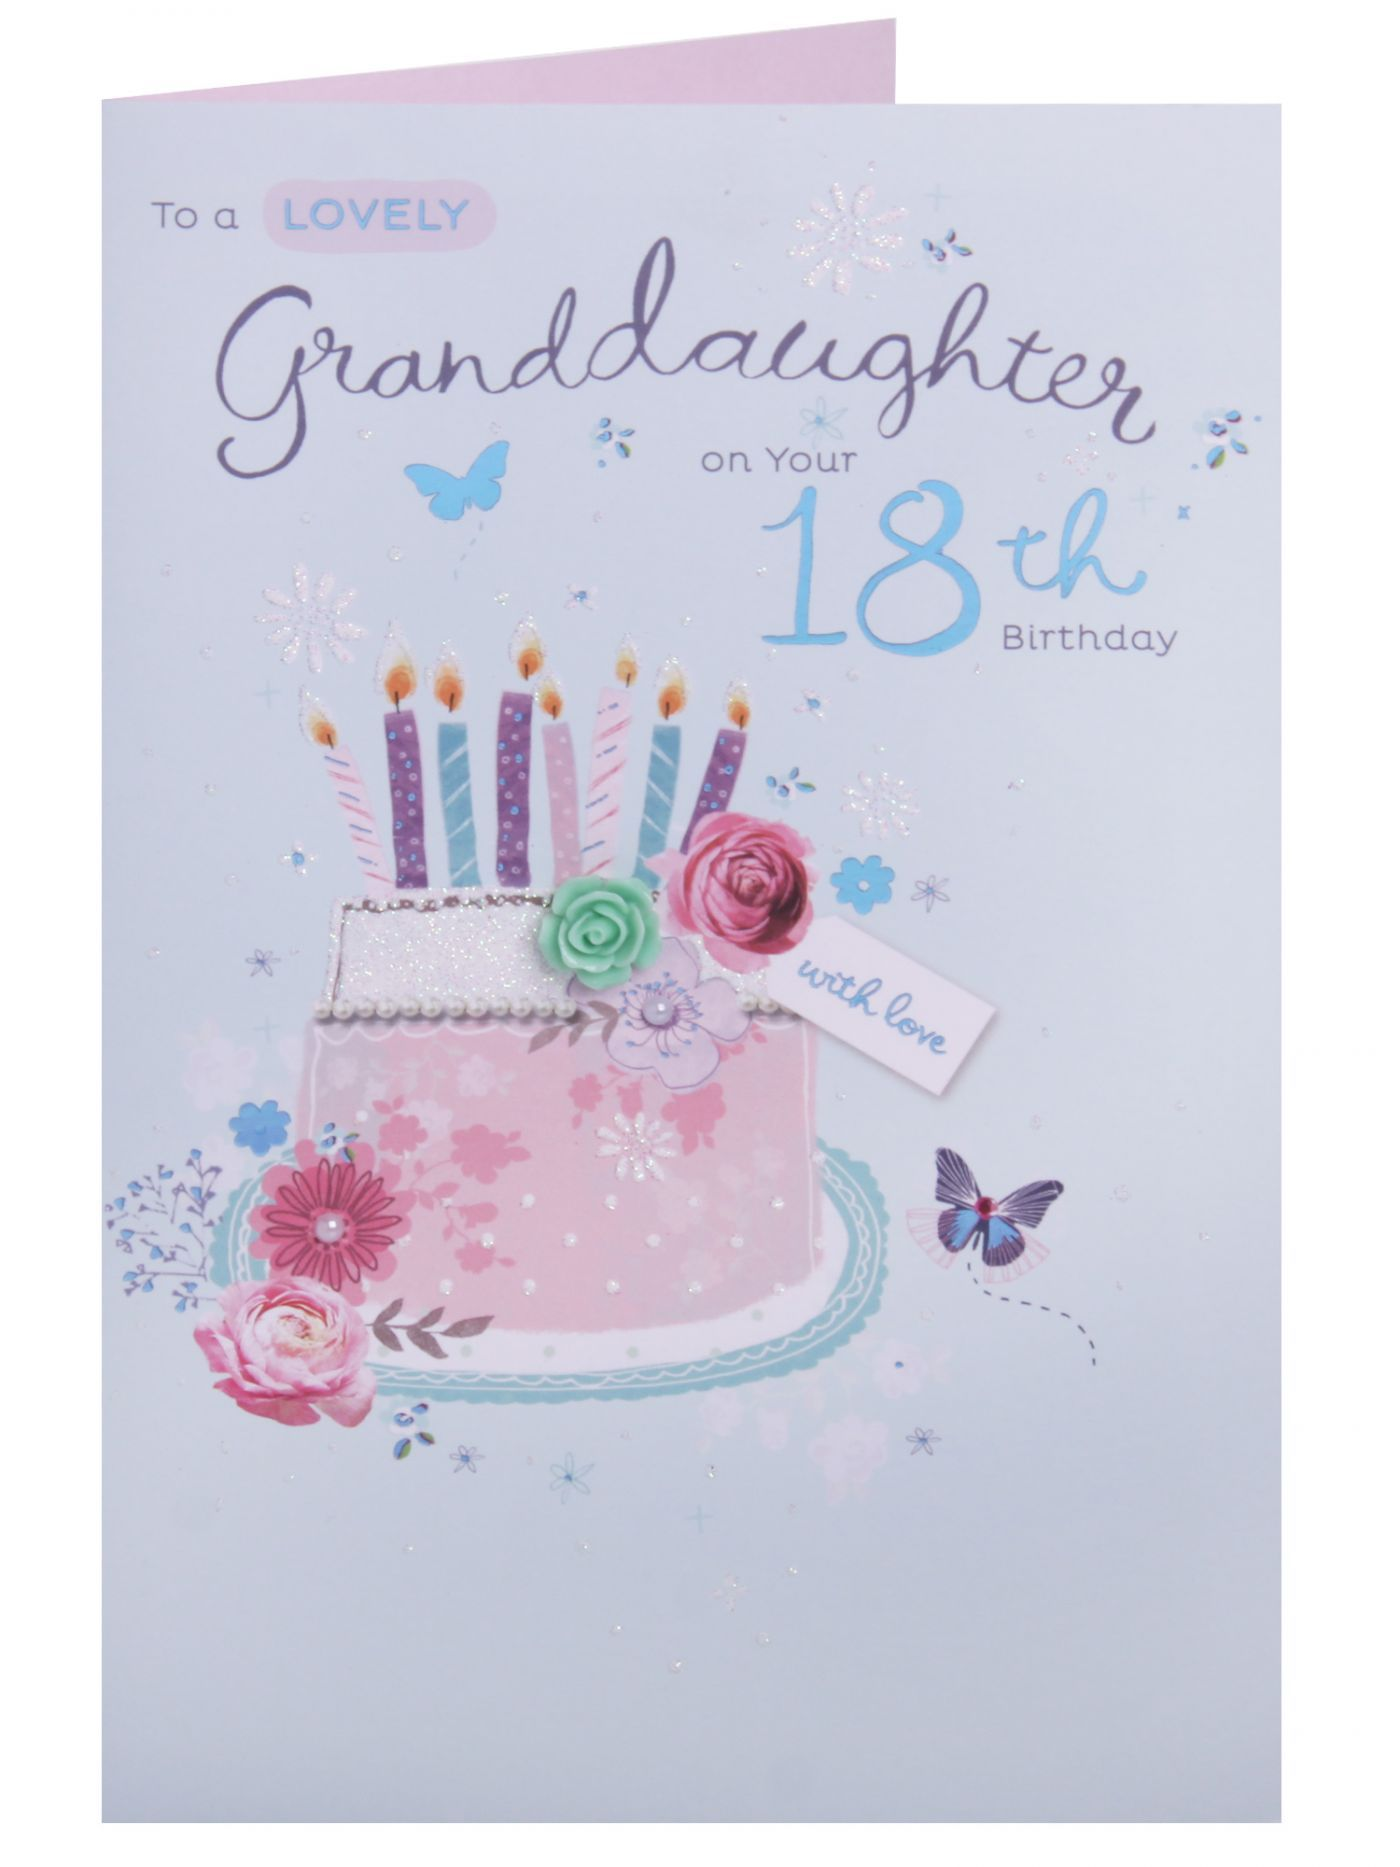 Lovely granddaughter 18th birthday card 18 21 birthday cards send birthday greetings with this pretty card embellished with plastic roses holographic foil and pearl diamante kristyandbryce Gallery